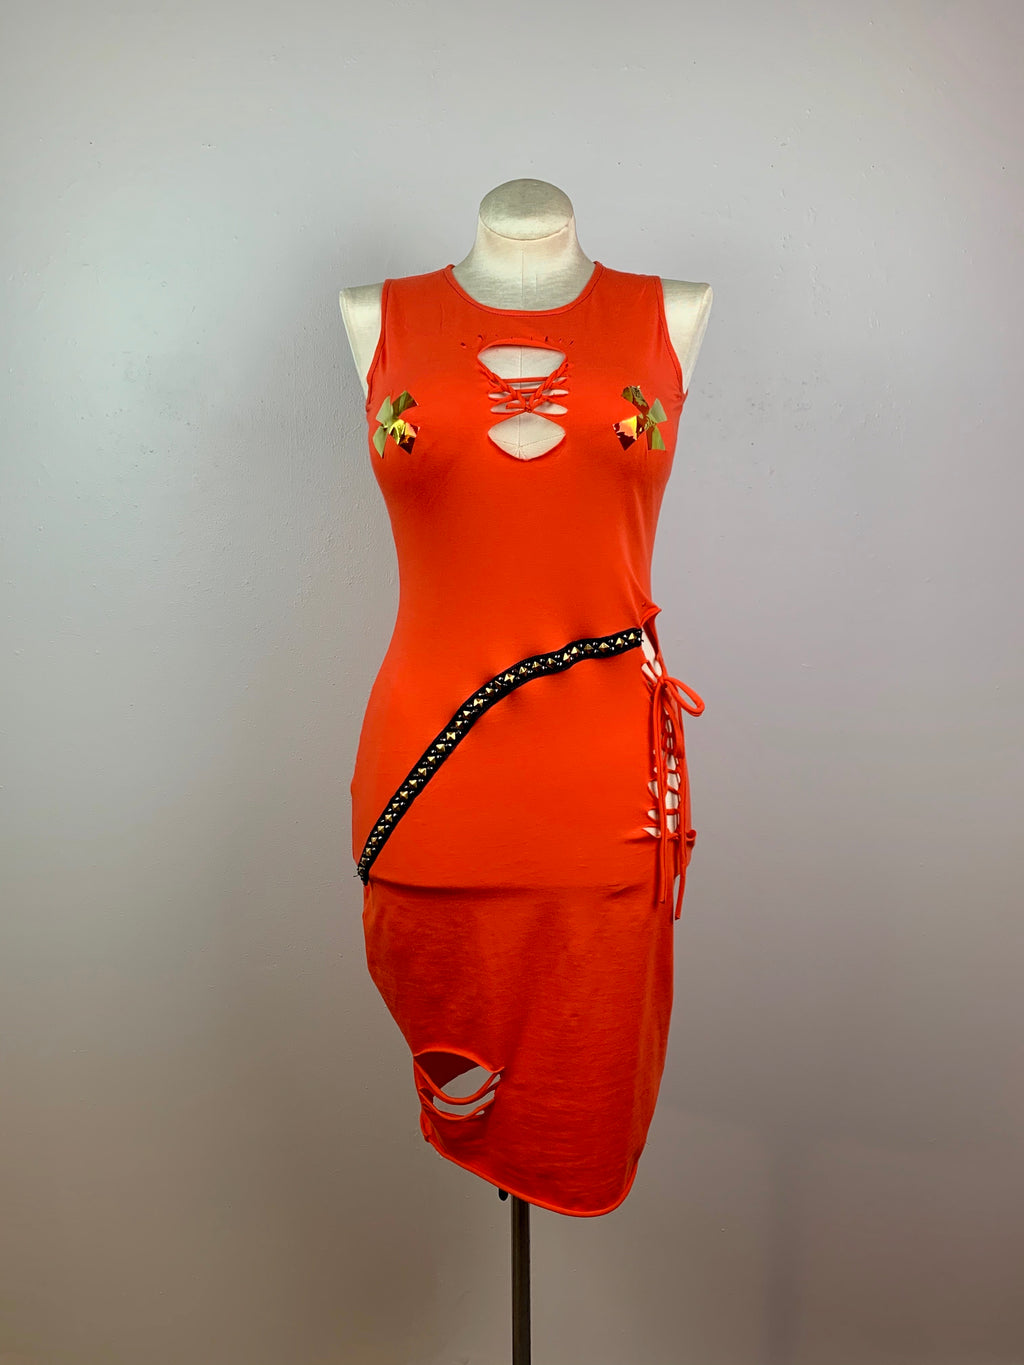 Peachy punk body-con dress • Size M